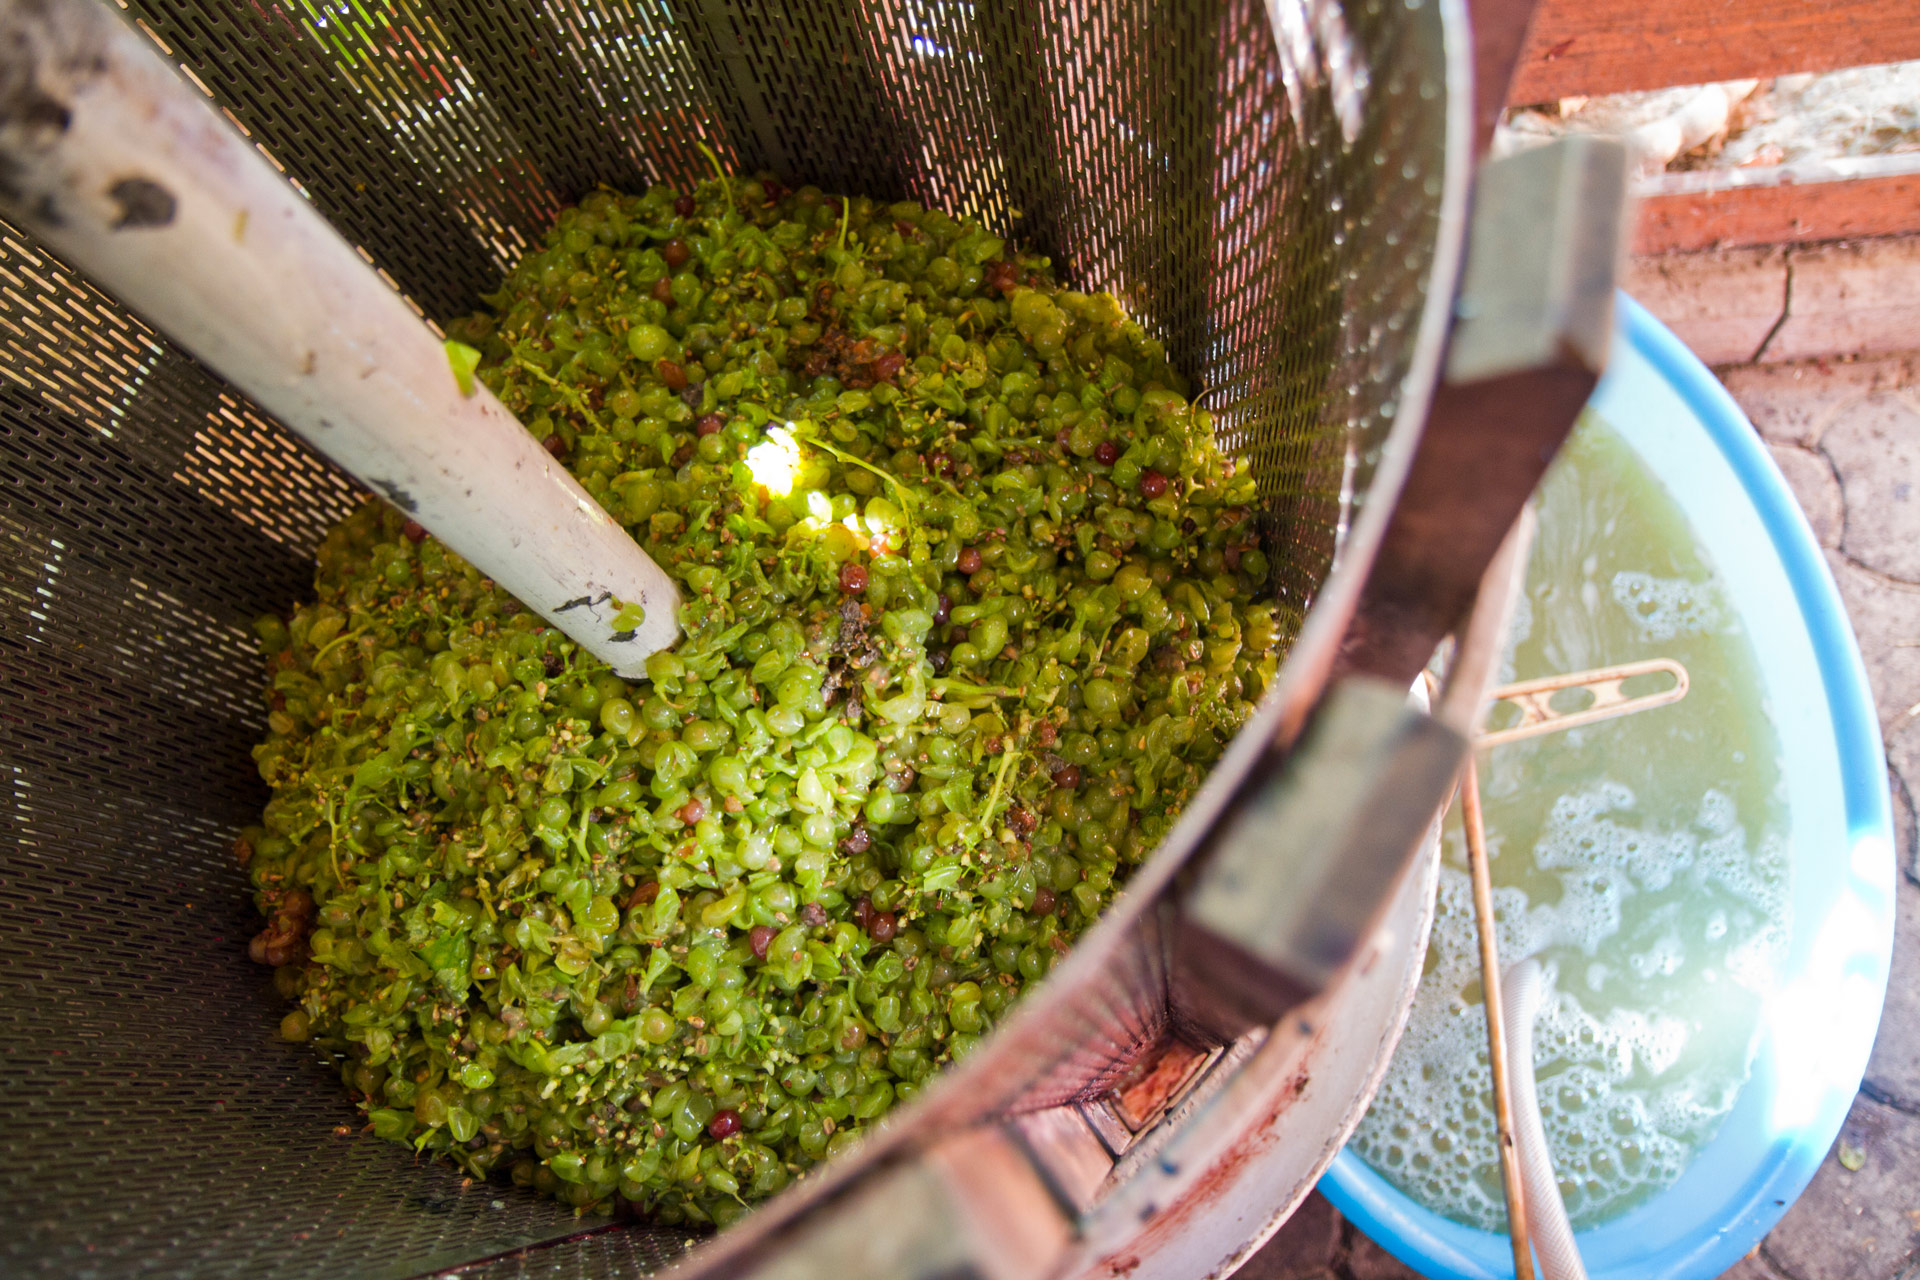 White wine grapes being pressed